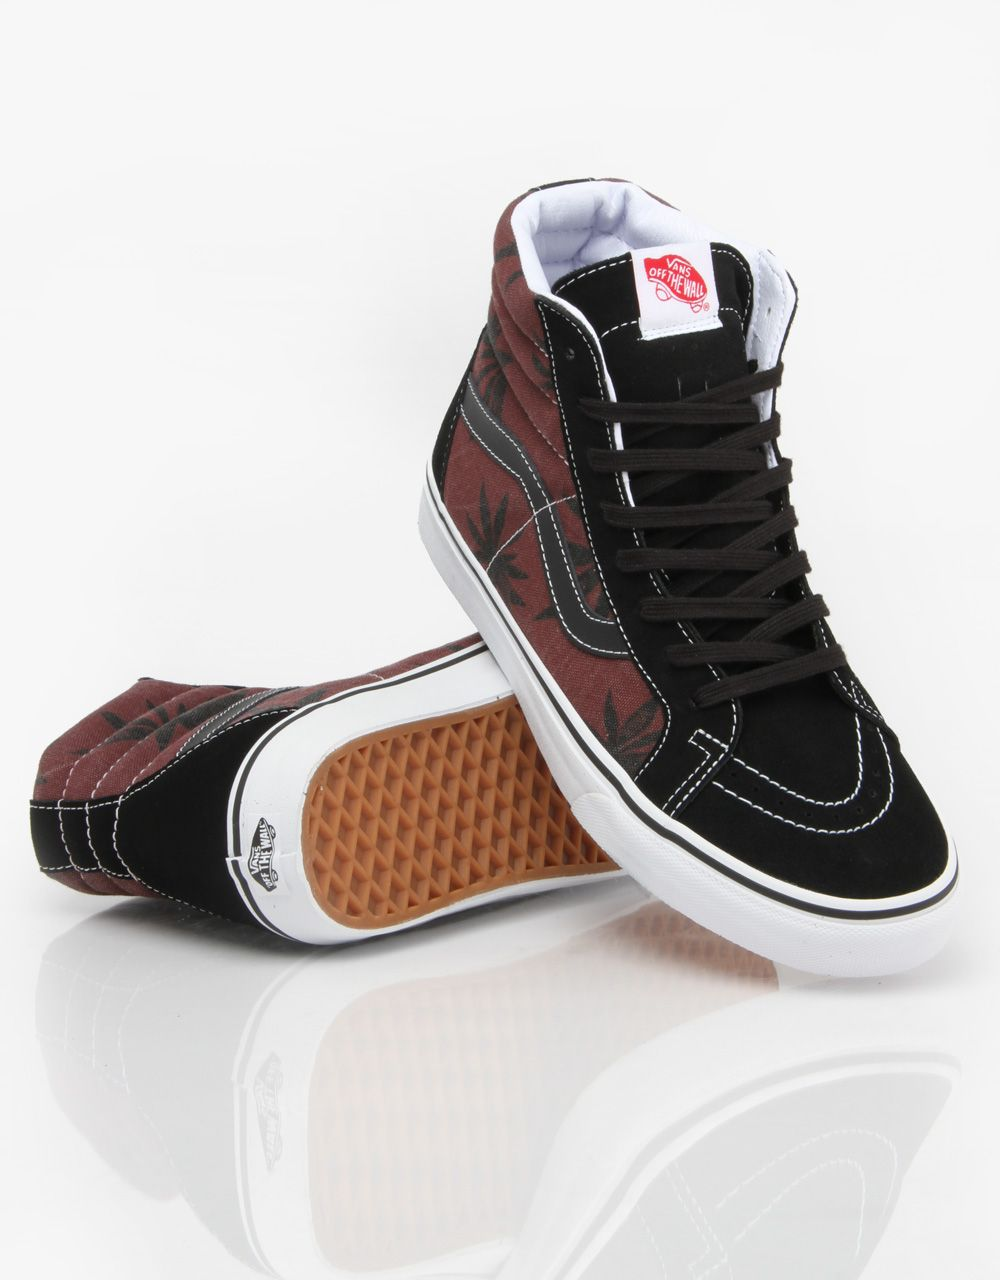 de9d33538345 Vans Sk8-Hi Reissue Van Doren Skate Shoes - Palm Port Royale -  RouteOne.co.uk